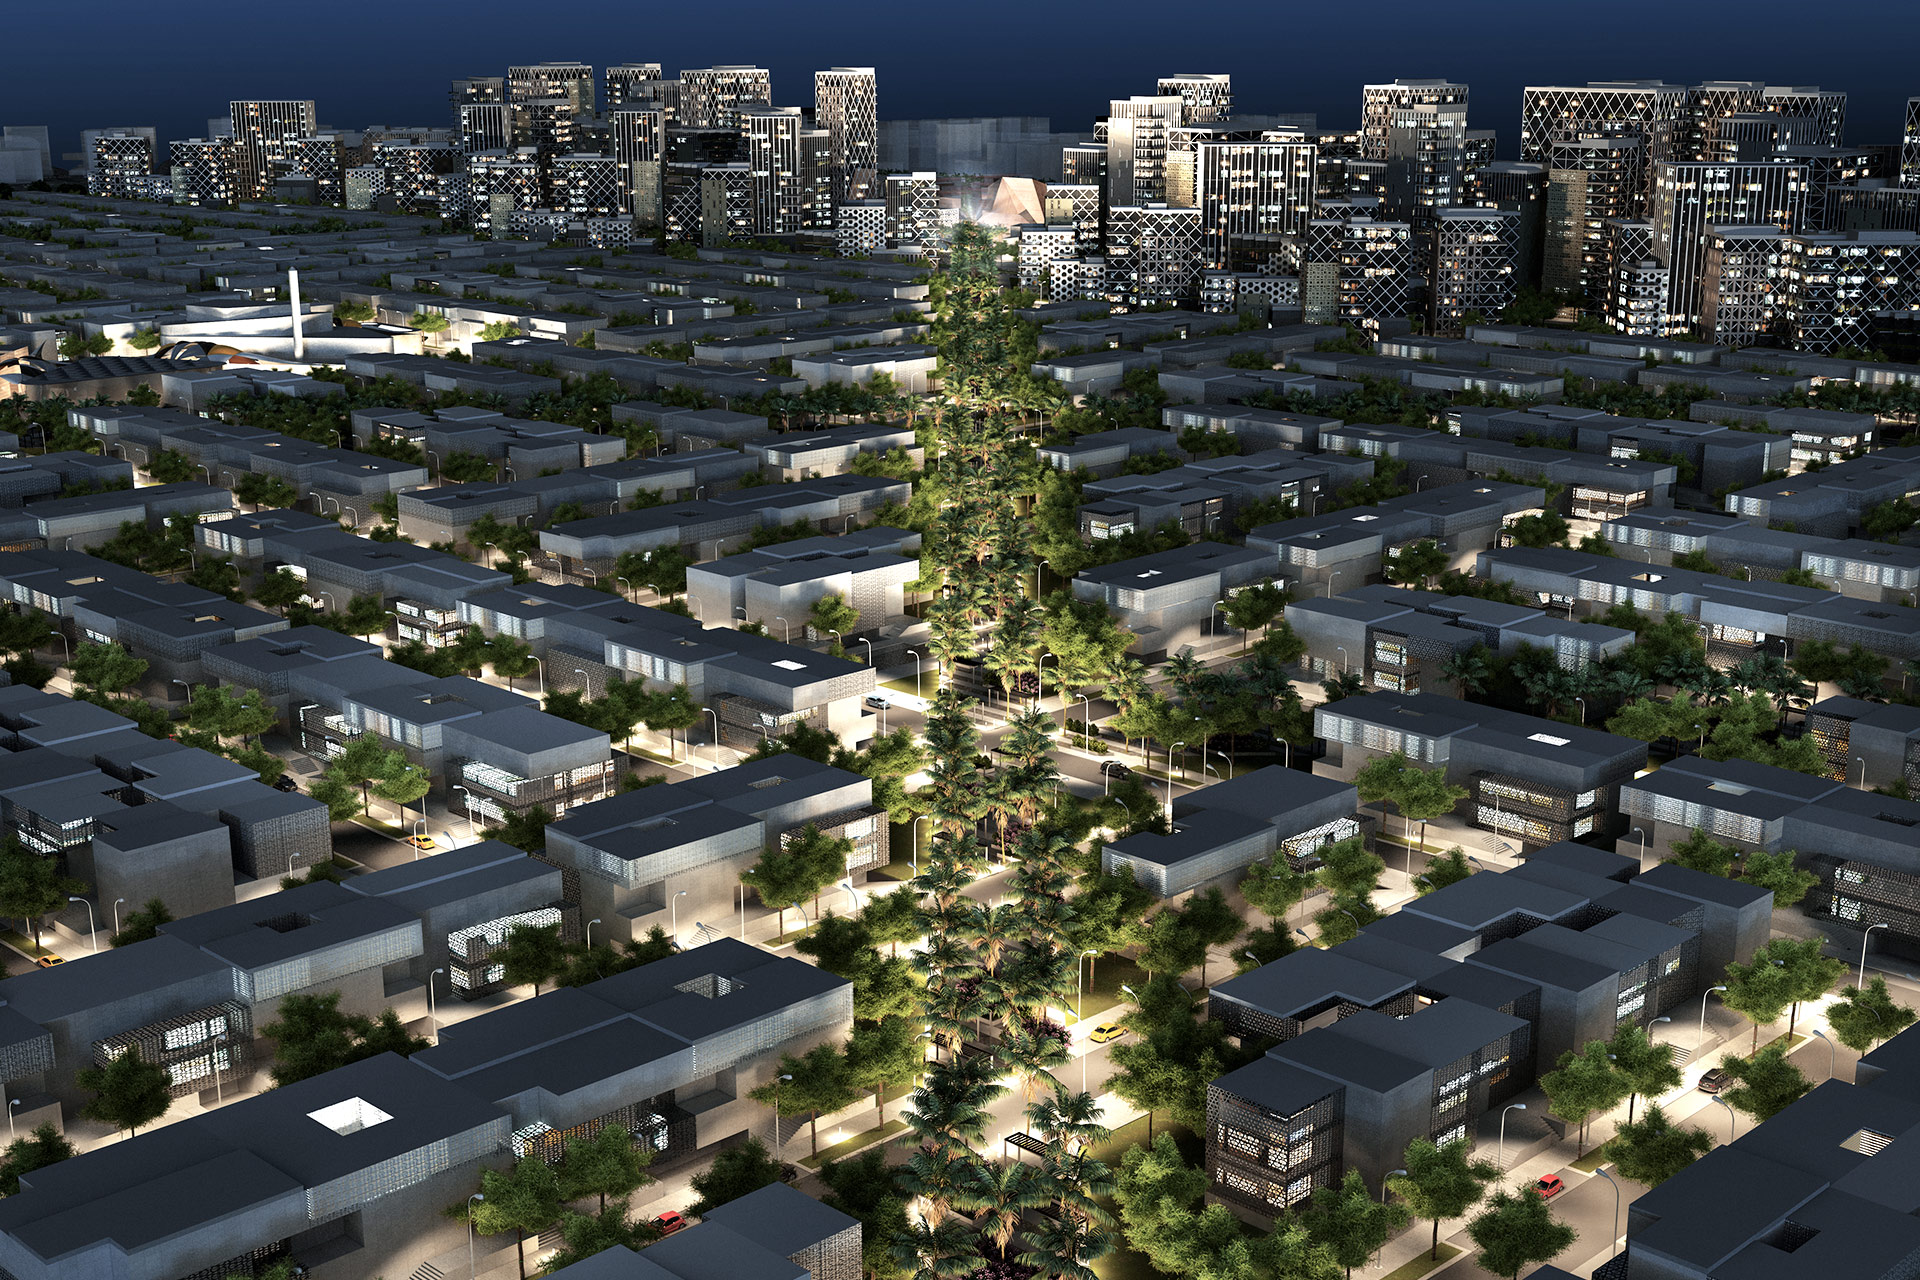 Having extensive experience creating master plans for urban areas across the world, we are passionate about generating socially progressive, culturally diverse and sustainable environments.